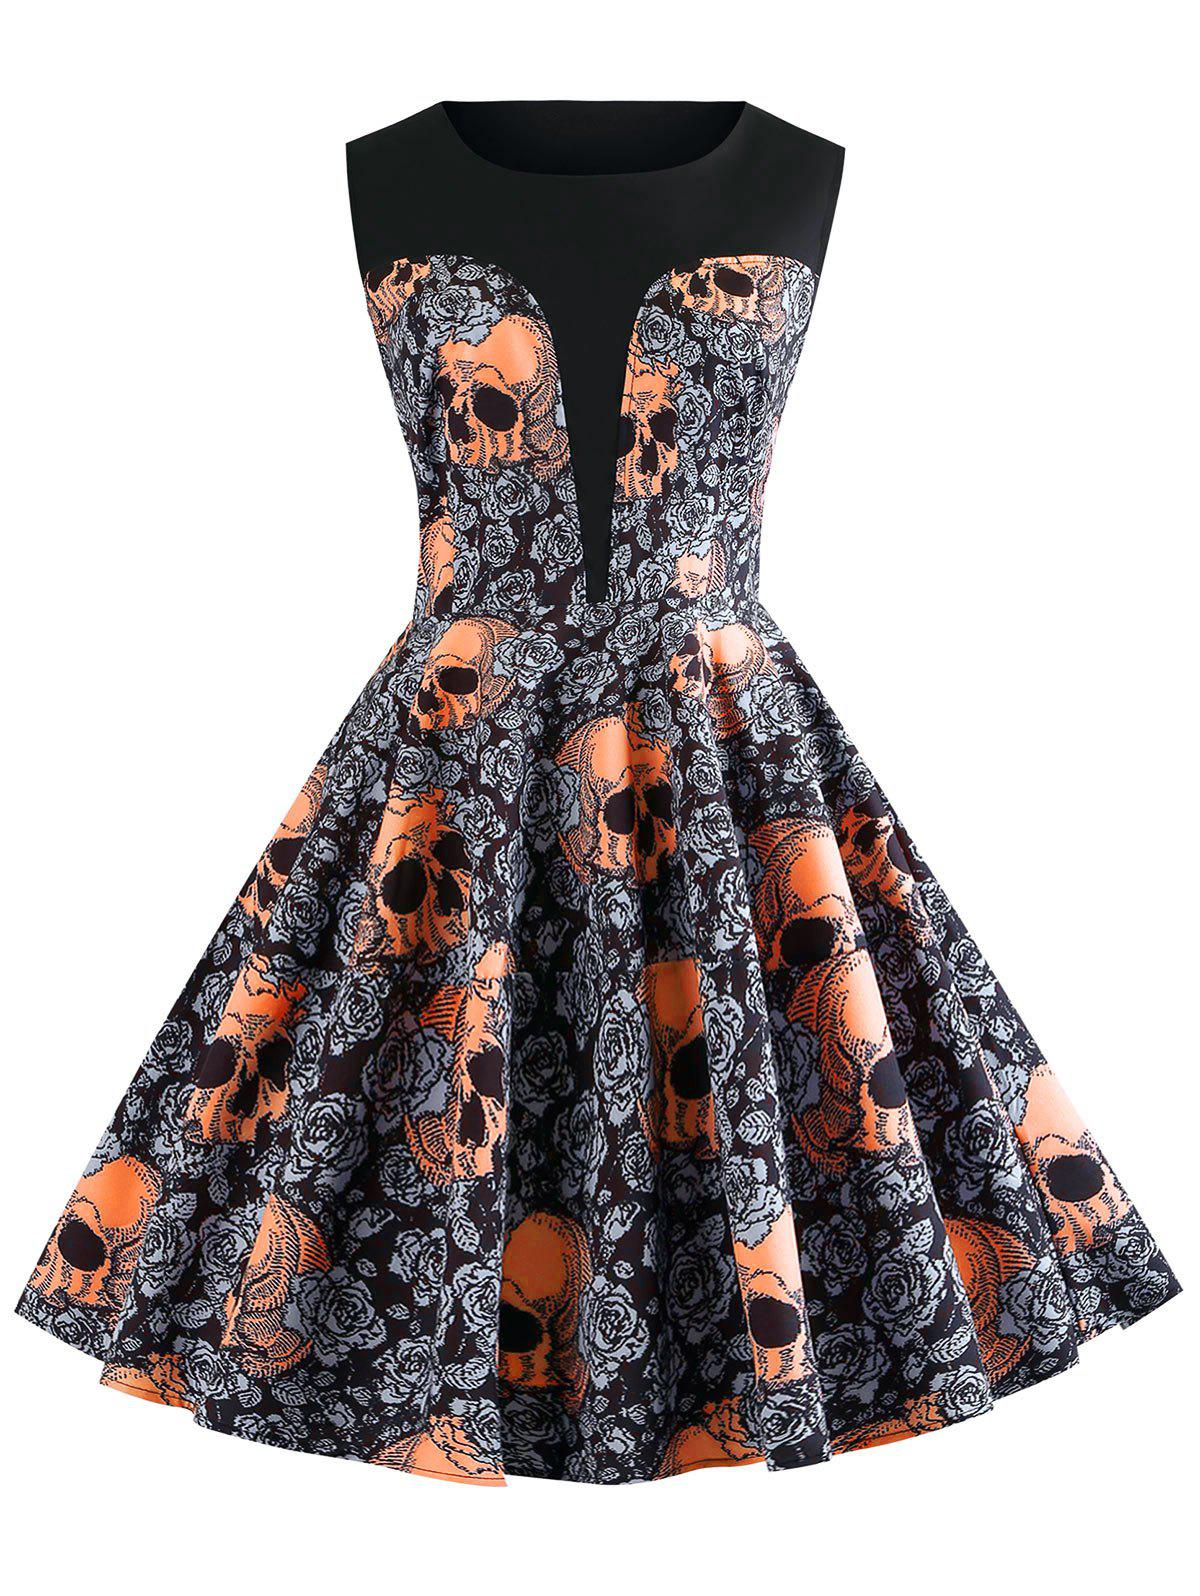 66% OFF   2019 Vintage Skull And Floral Print Halloween A Line Dress ... e7028c6b9